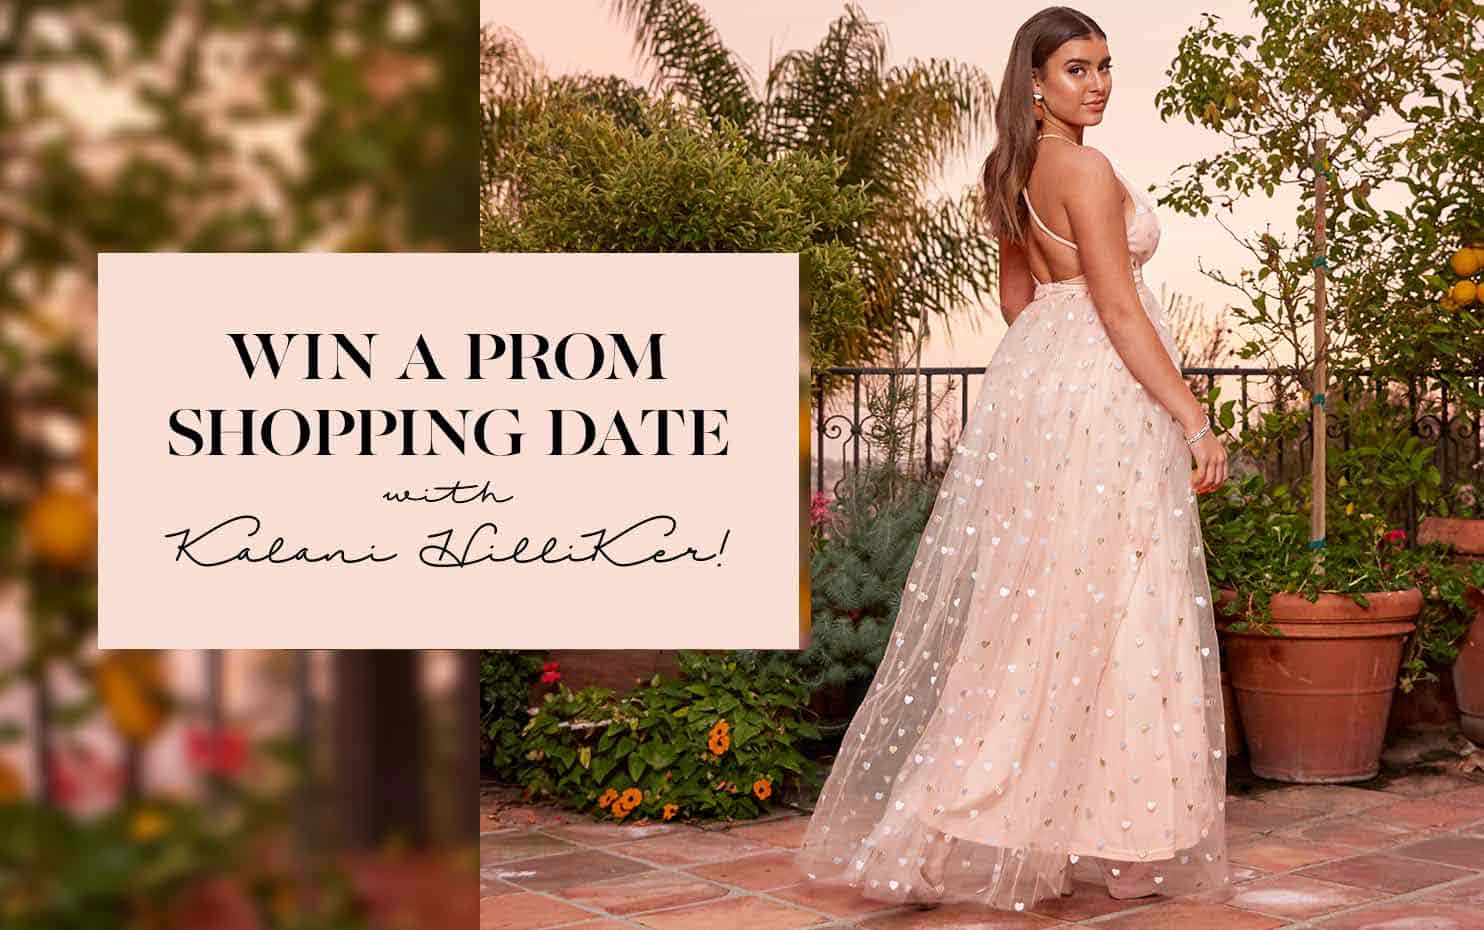 Win a Prom Shopping Date with Kalani Hilliker!